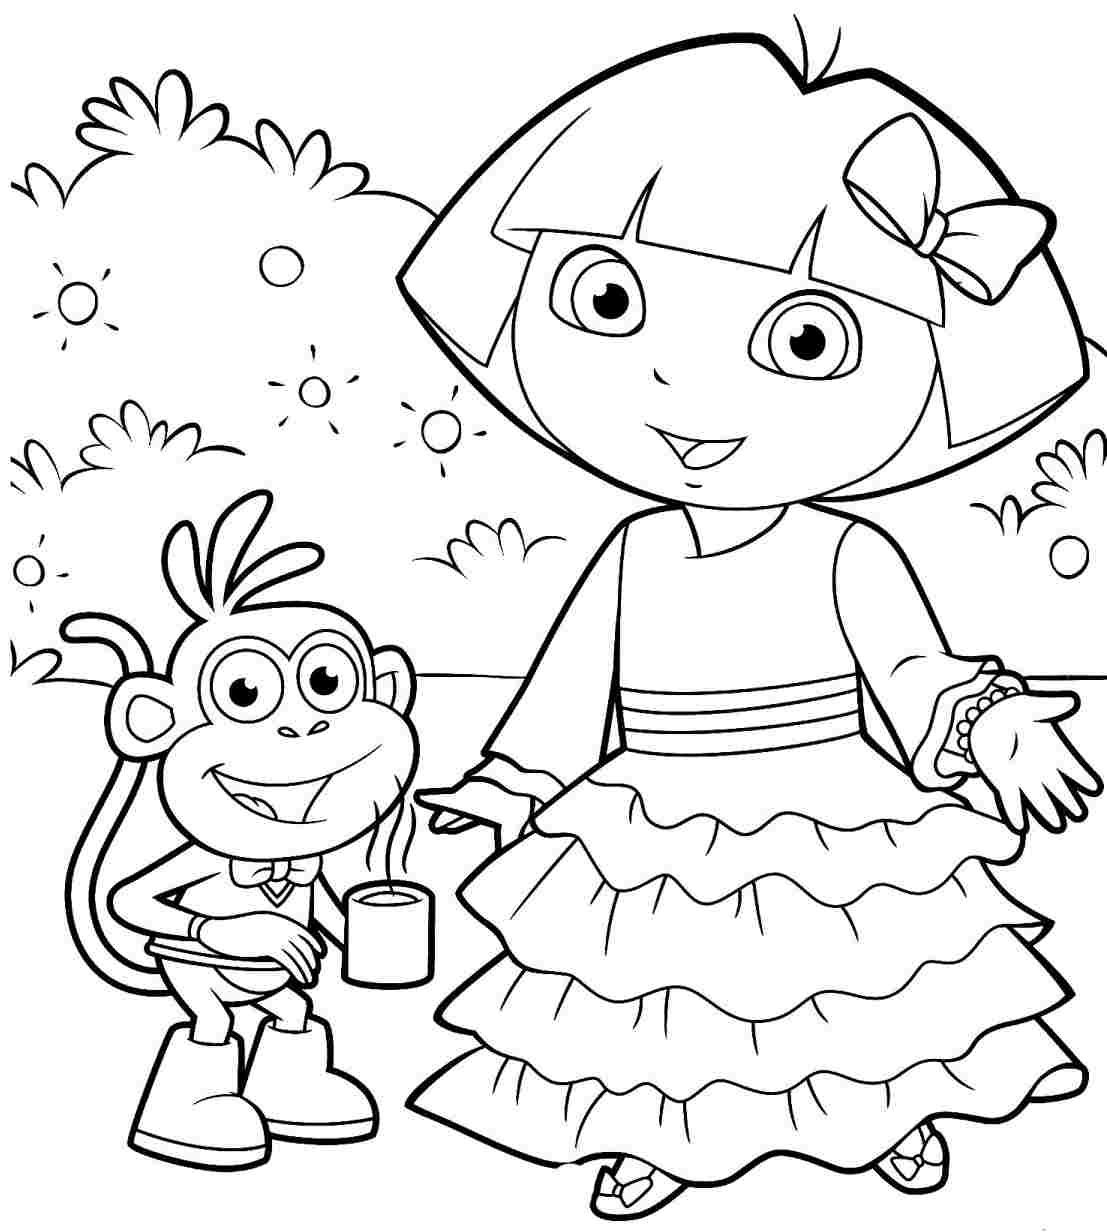 Free dora the explorer halloween coloring pages ~ Dora The Explorer Ask Something | Dora The Explorer ...